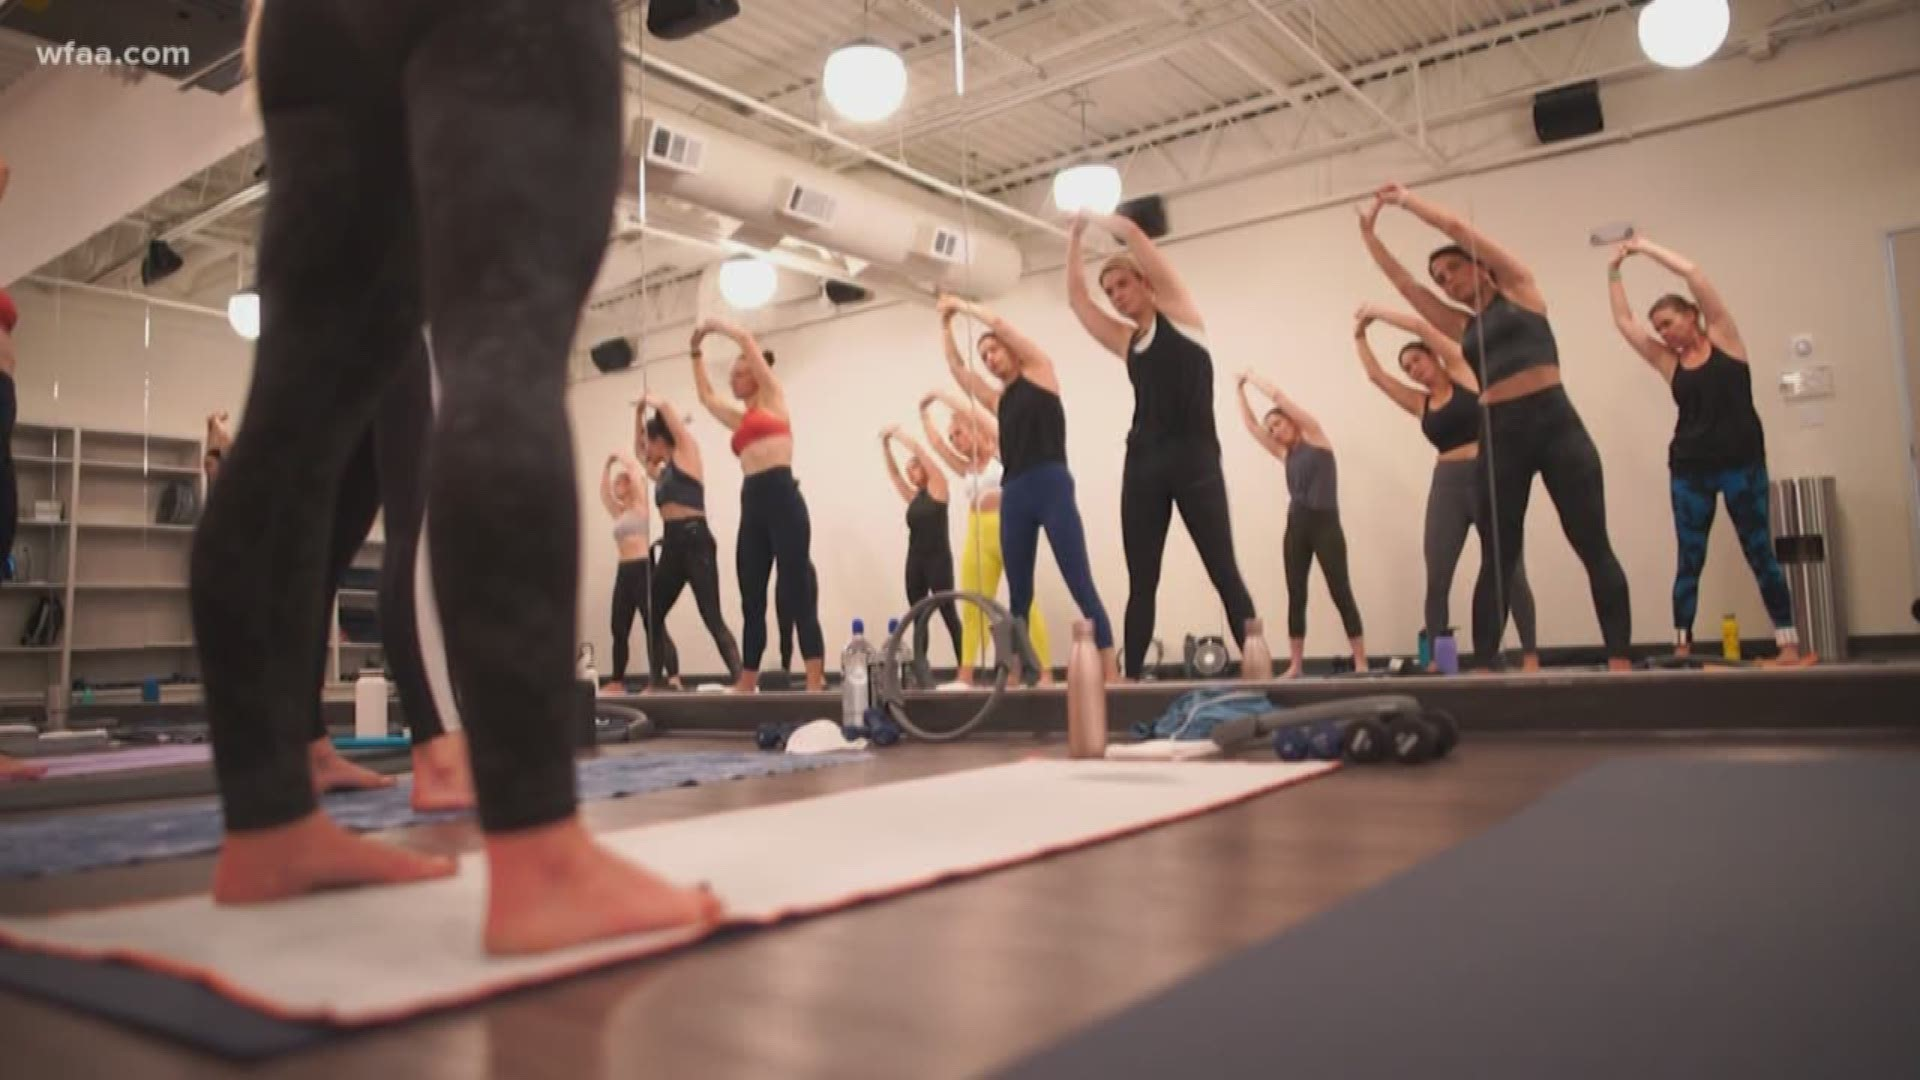 Wellness Wednesday Sonia Spotlights Shine Hot Pilates Sculpt Wfaa Com